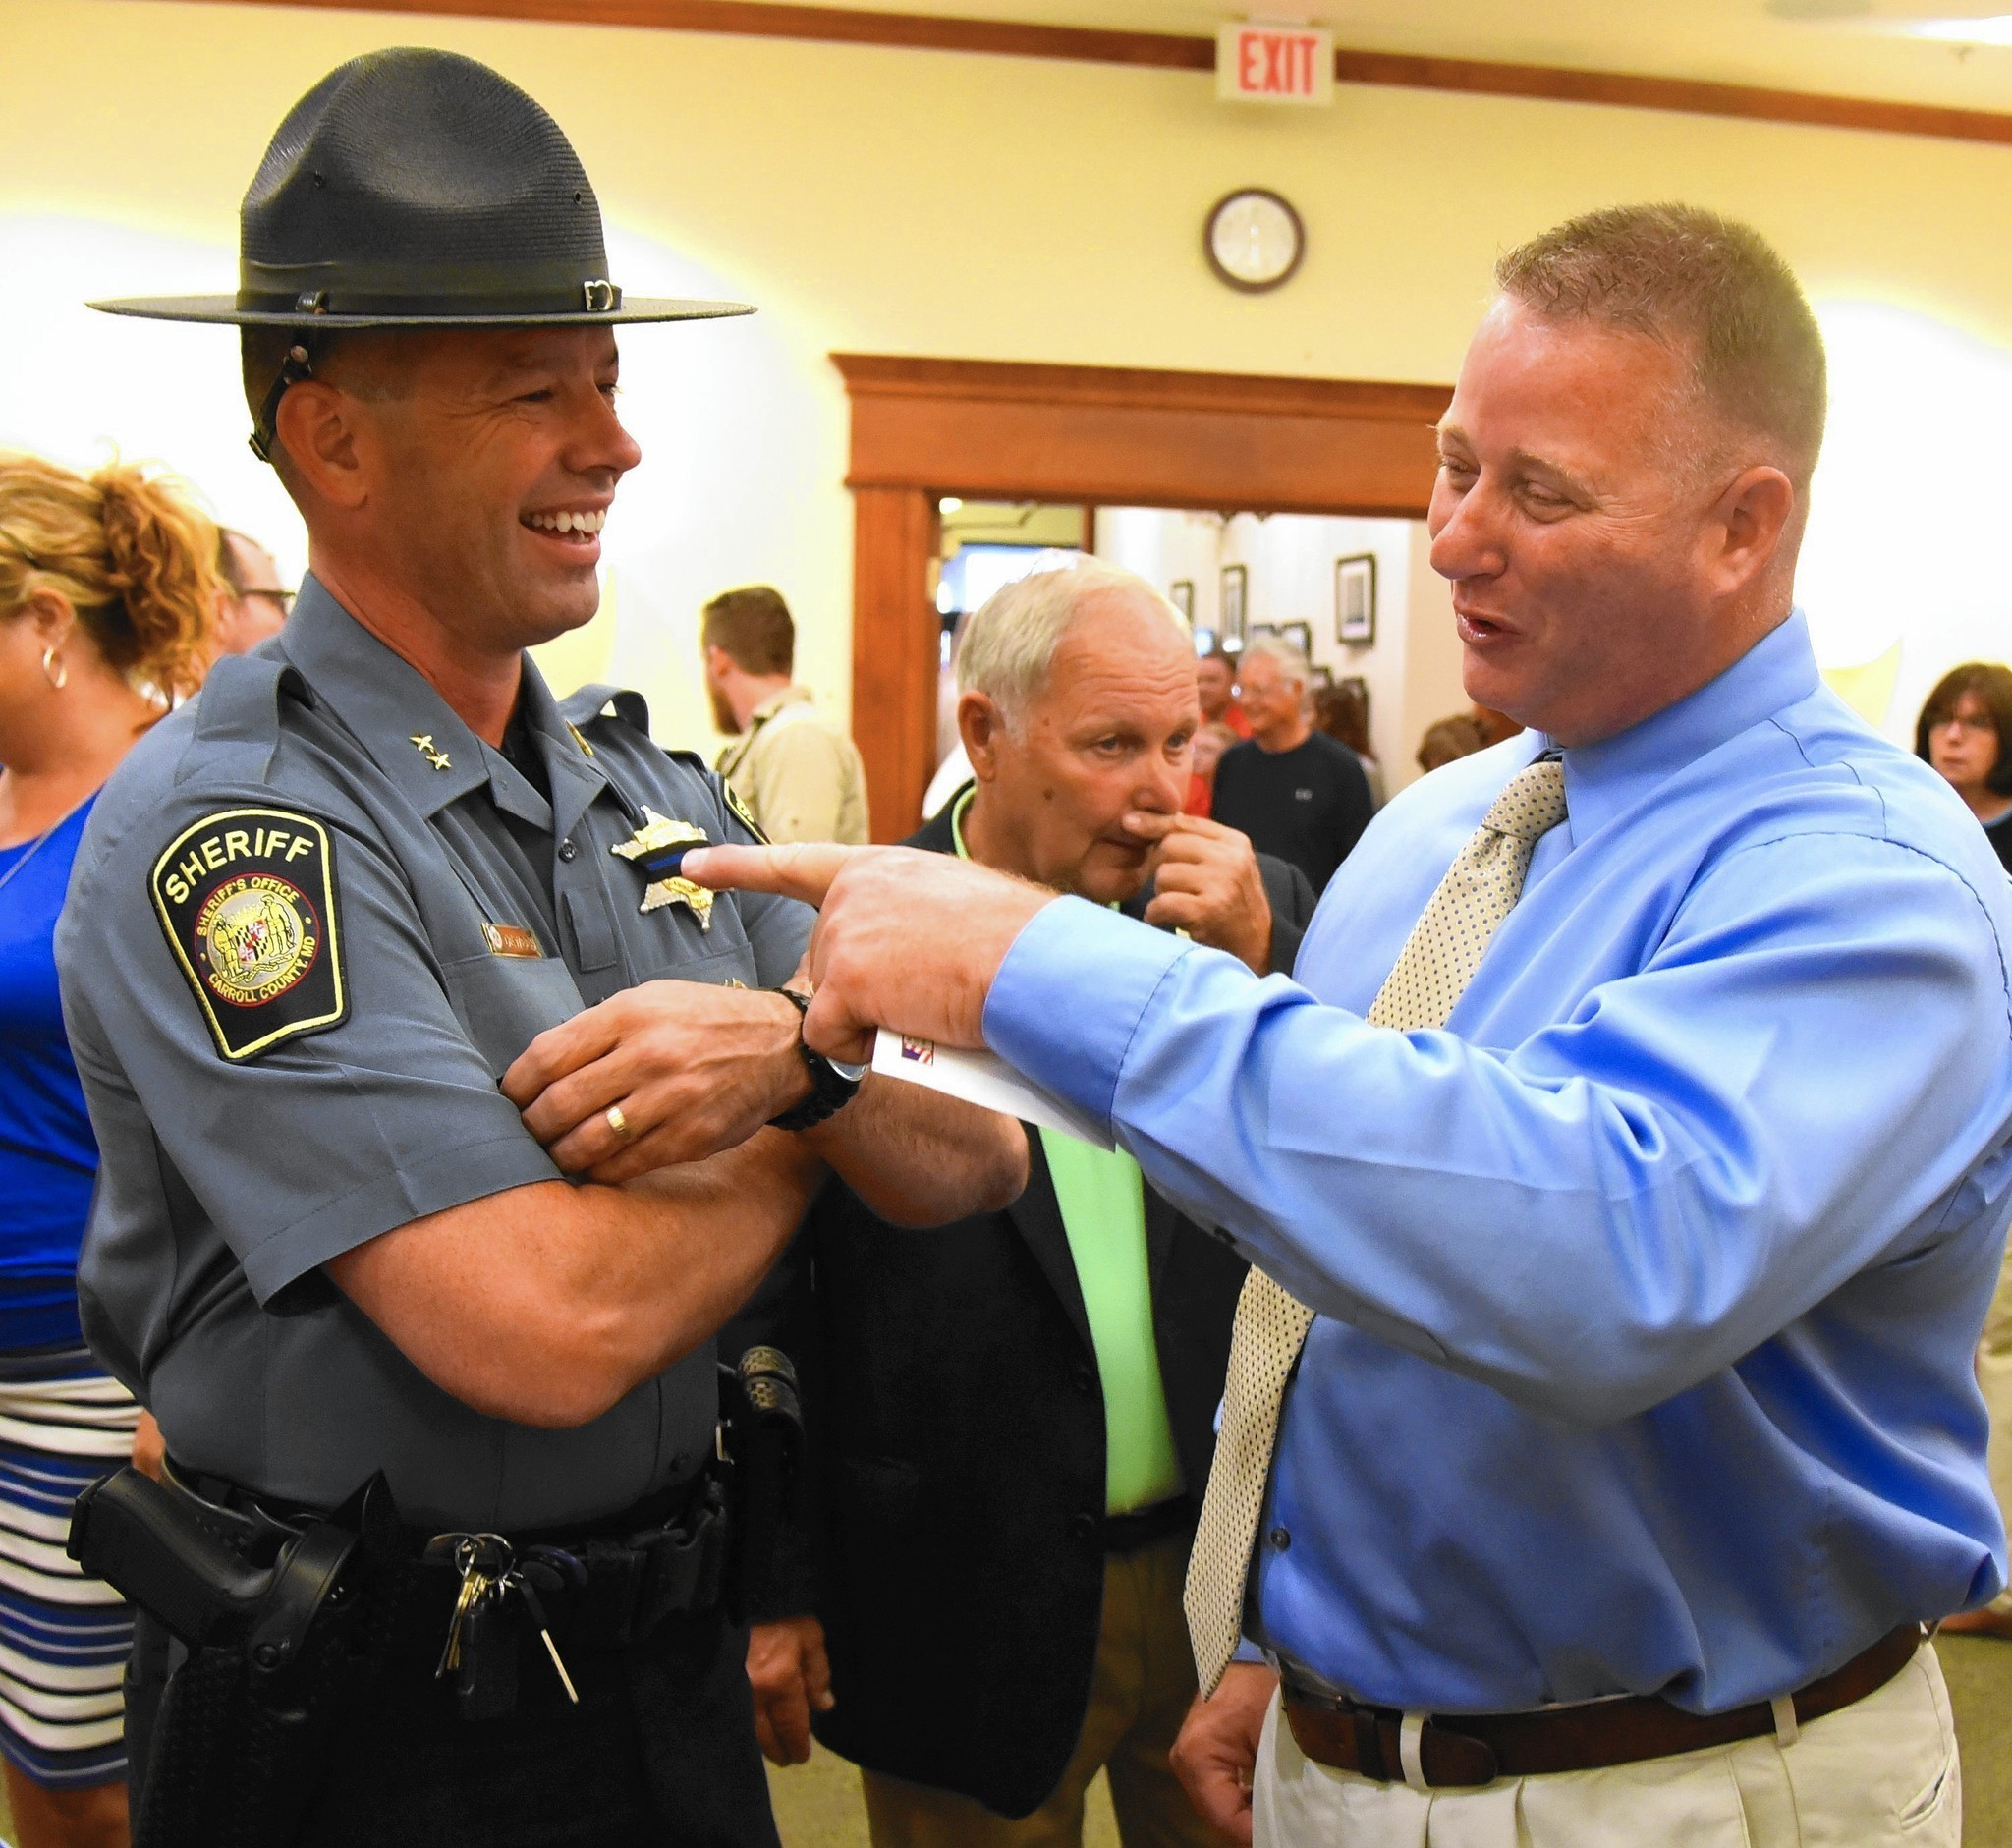 New Mount Airy Police Chief Introduced To Community